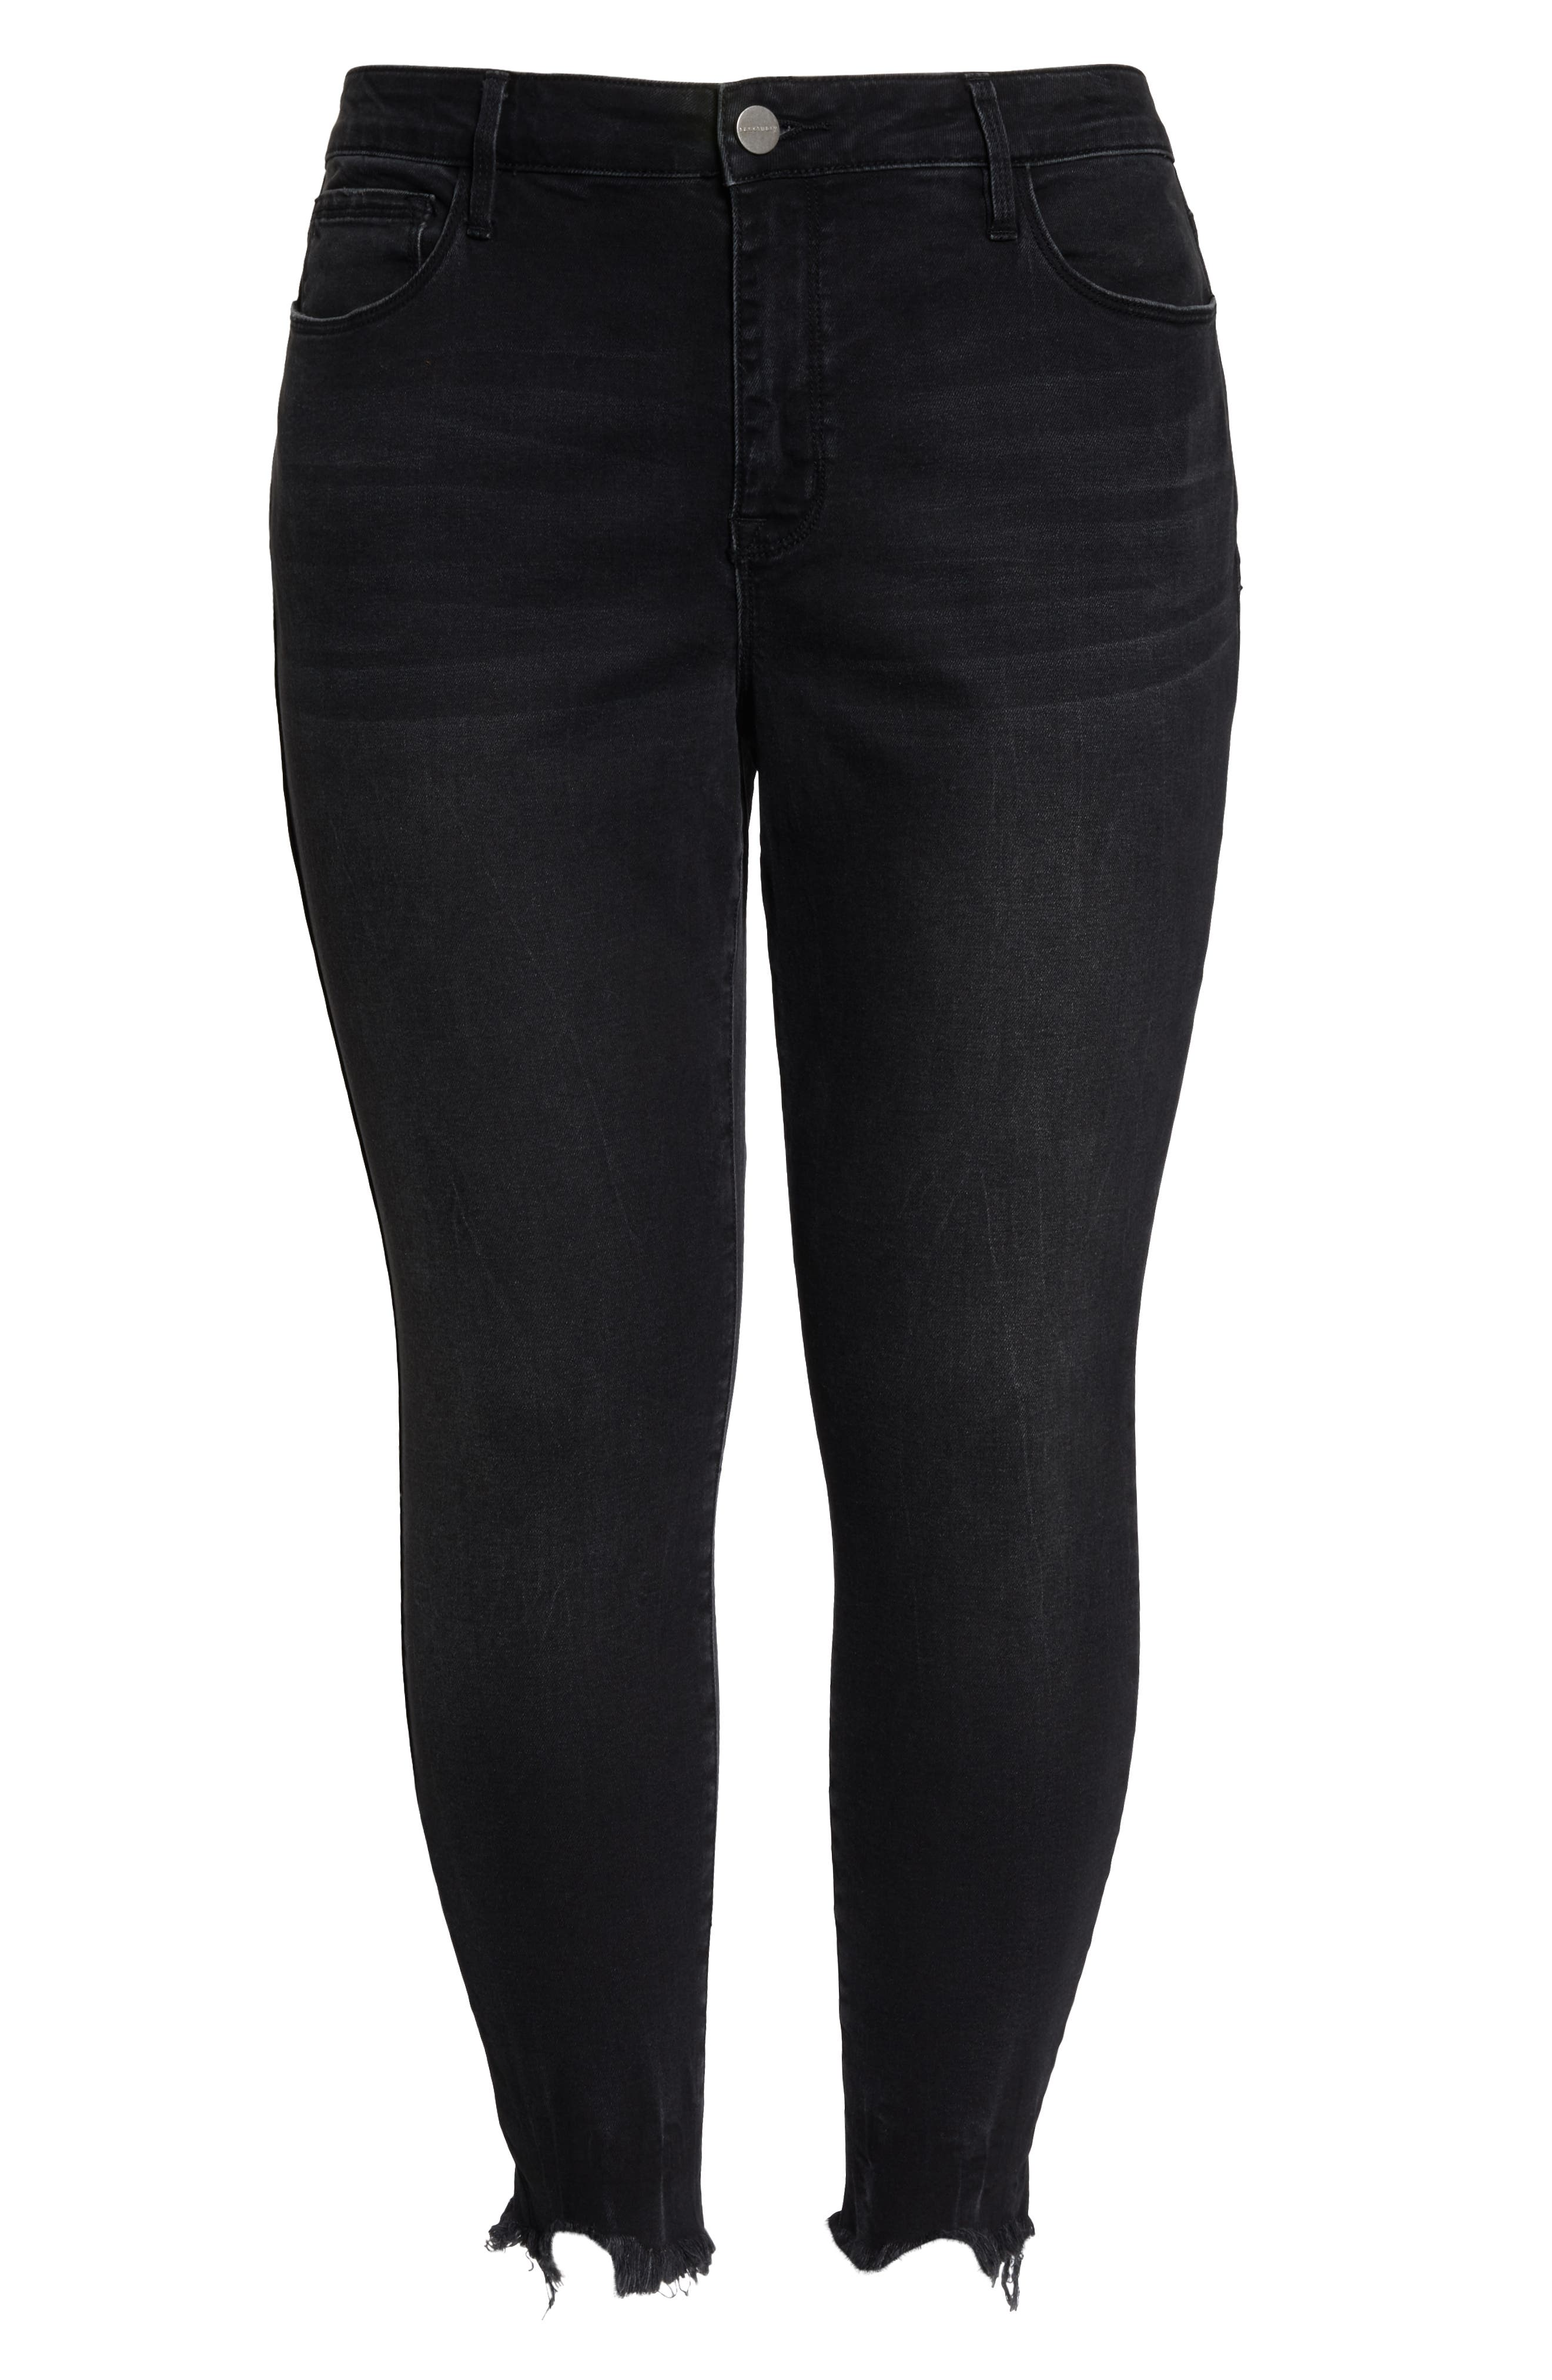 SANCTUARY, Social Standard High Rise Ankle Skinny Jeans, Alternate thumbnail 2, color, 001